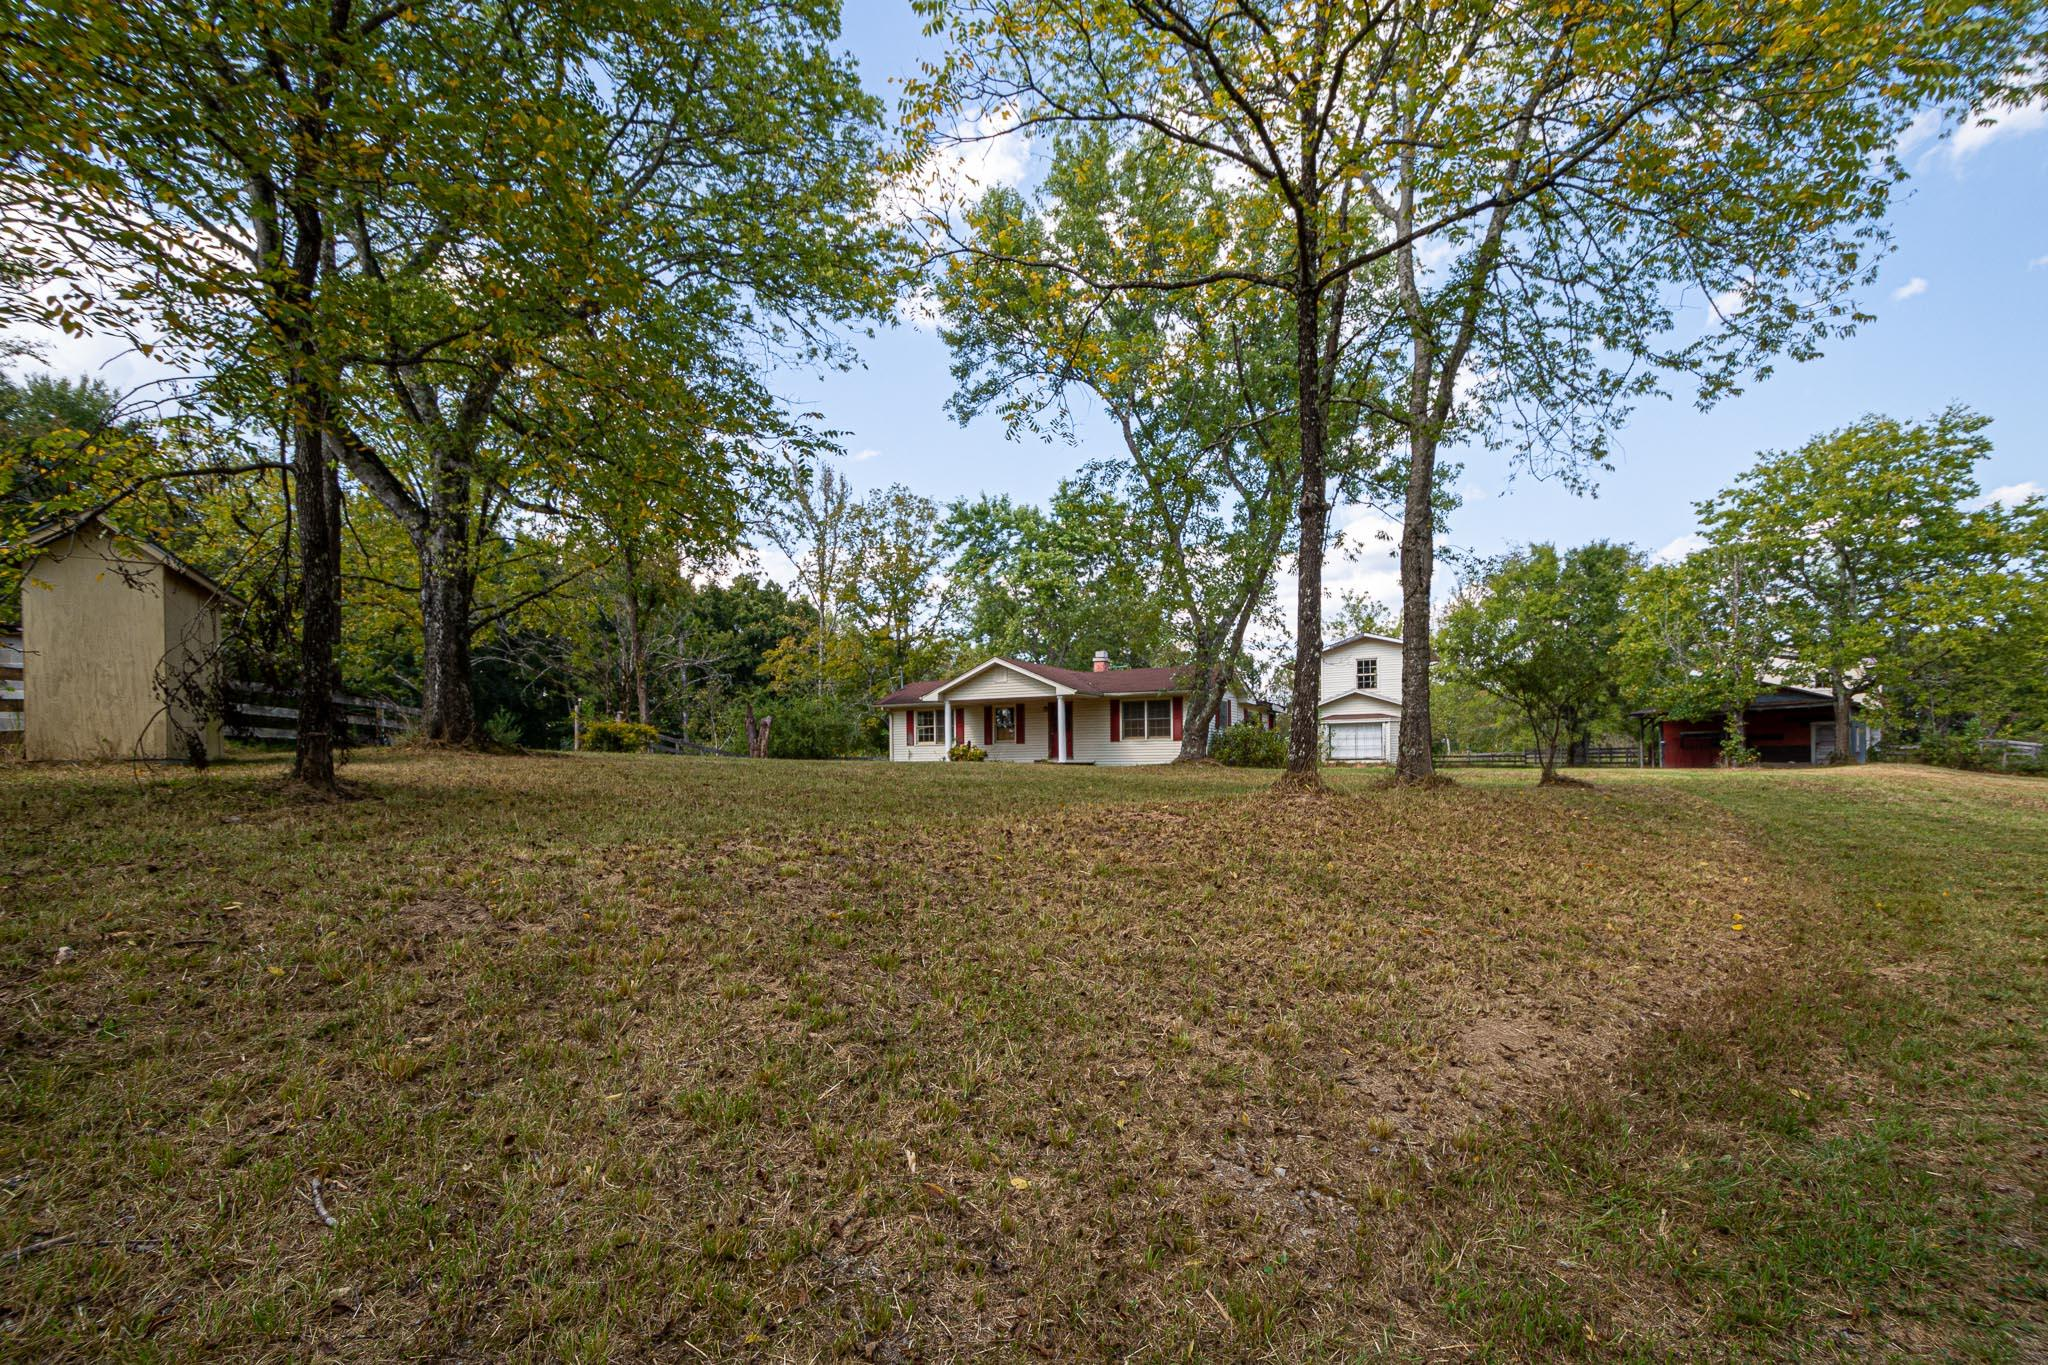 480 Pollock Hollow Rd, Minor Hill, TN 38473 - Minor Hill, TN real estate listing